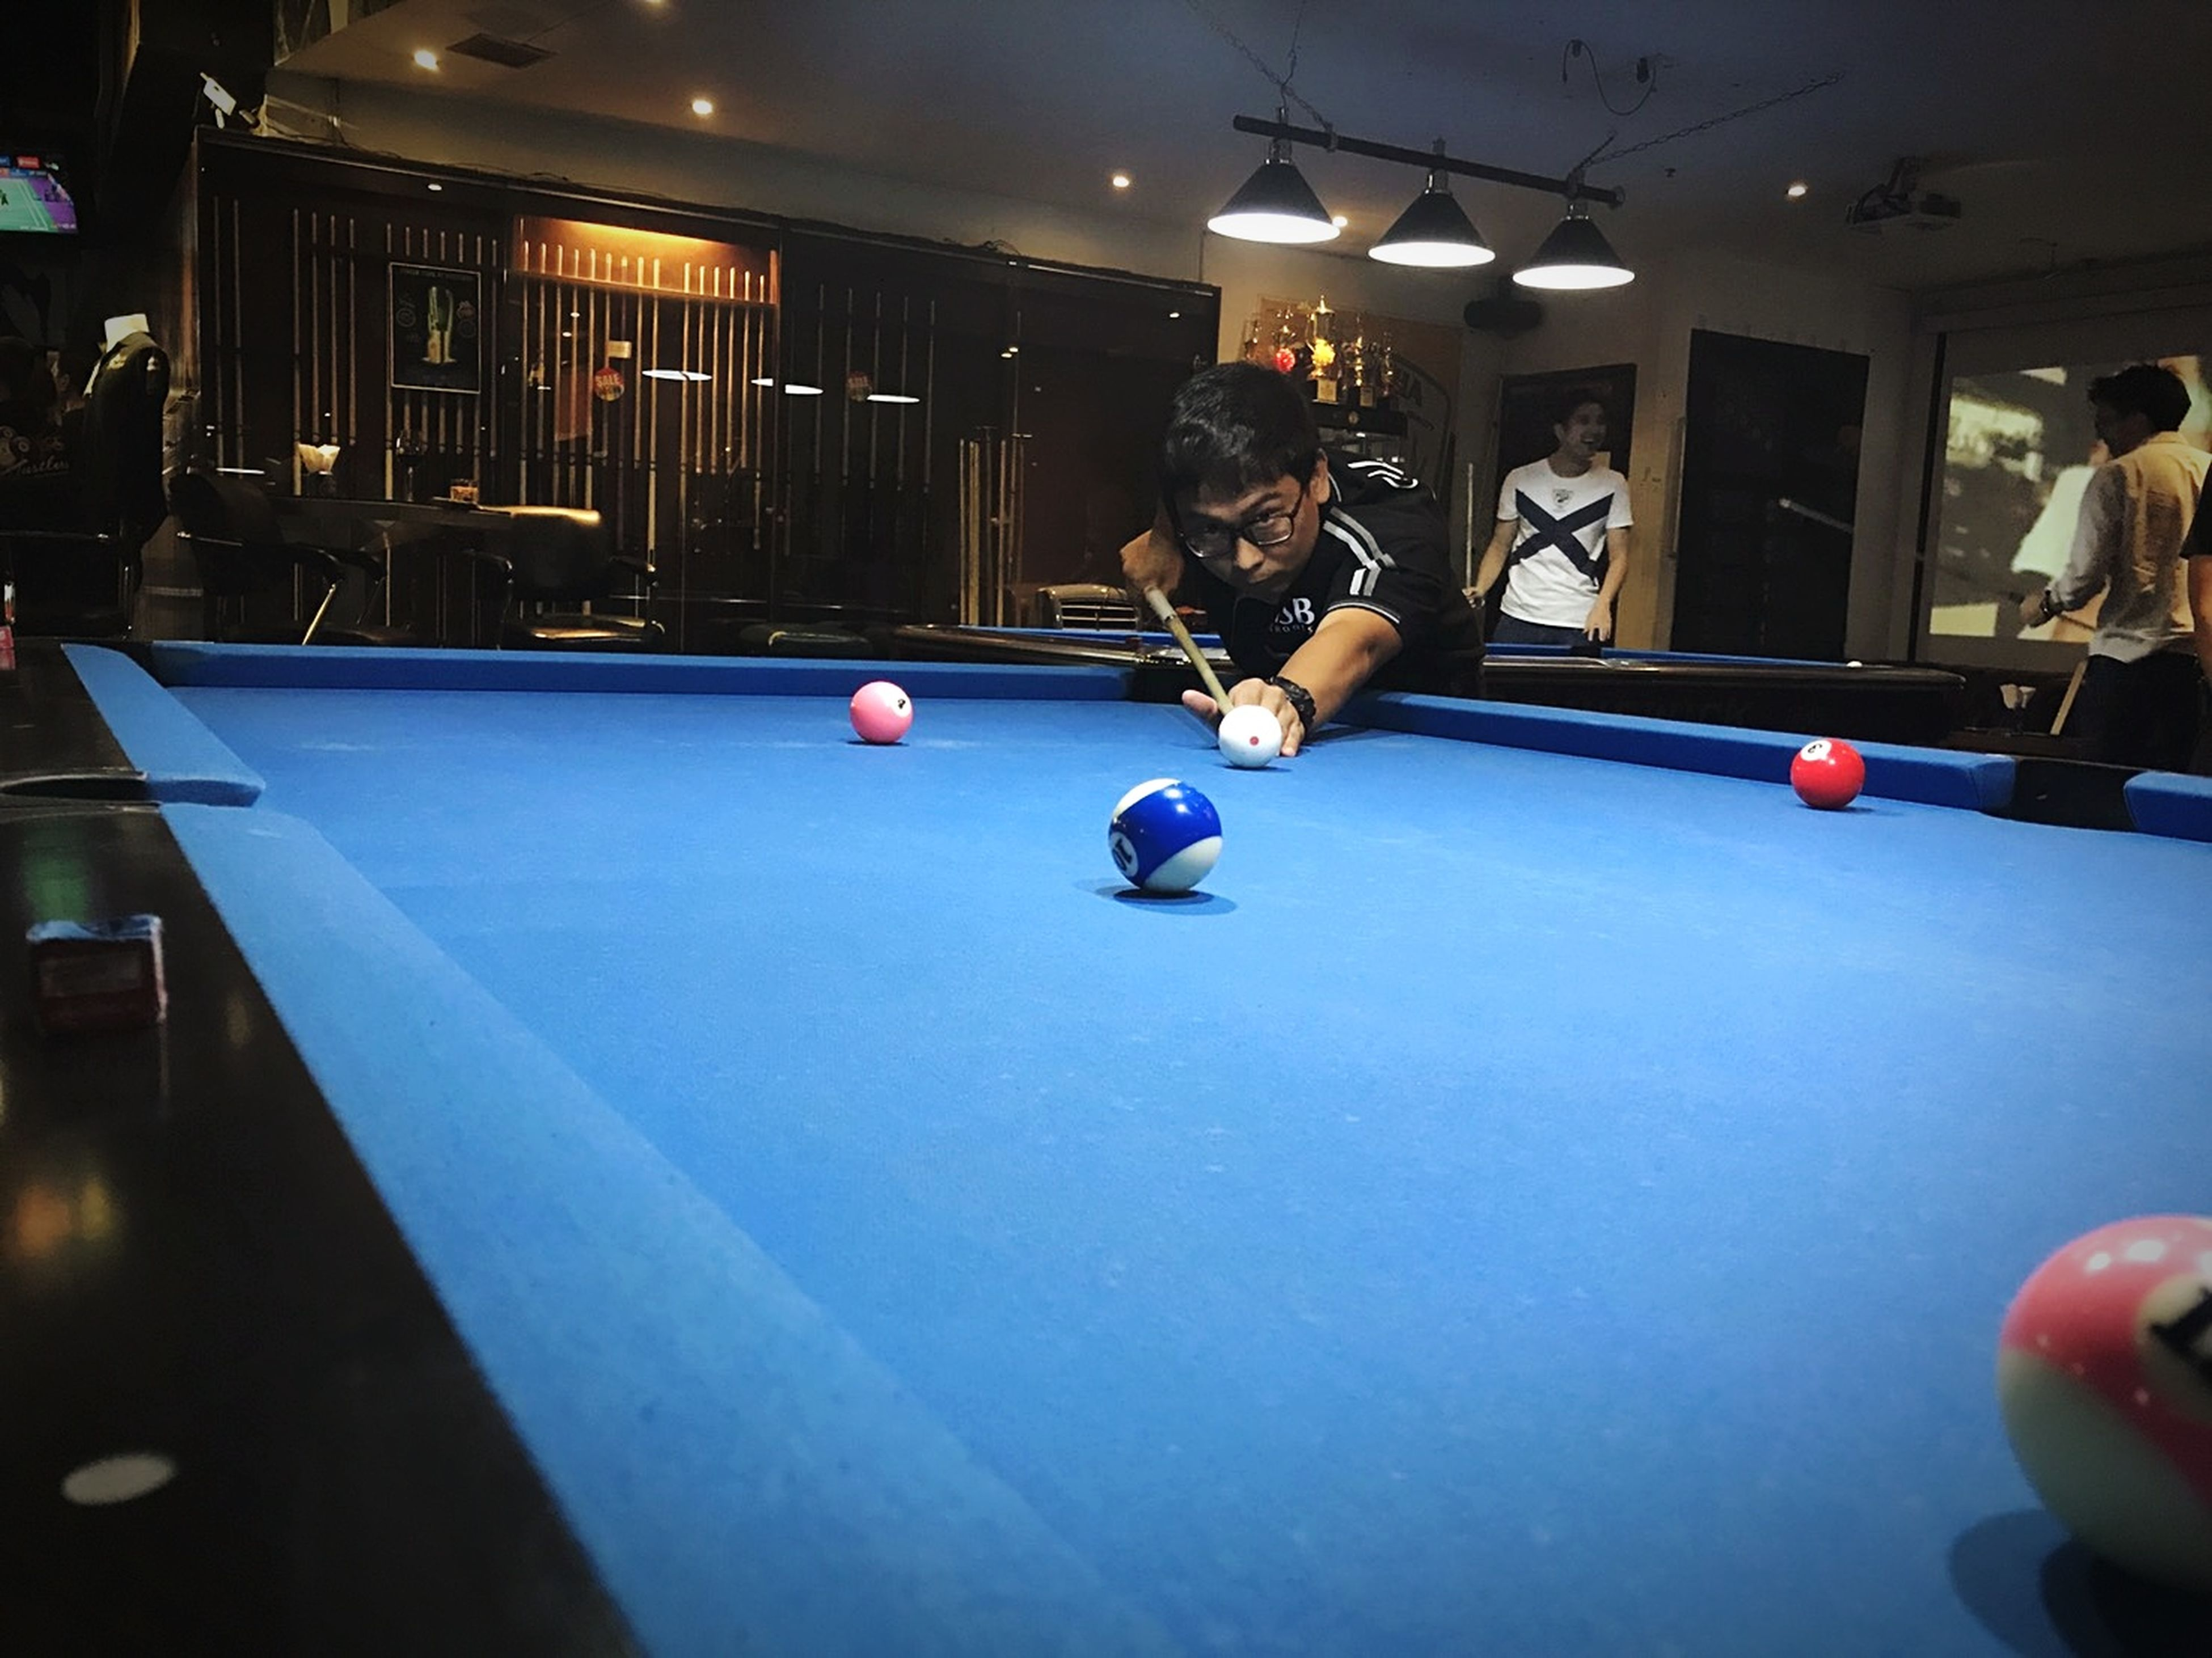 pool ball, pool table, pool - cue sport, sport, pool cue, playing, ball, snooker, lifestyles, leisure games, leisure activity, real people, indoors, recreational pursuit, snooker ball, blue, pool hall, competition, concentration, cue ball, one person, snooker and pool, human hand, friendship, young adult, people